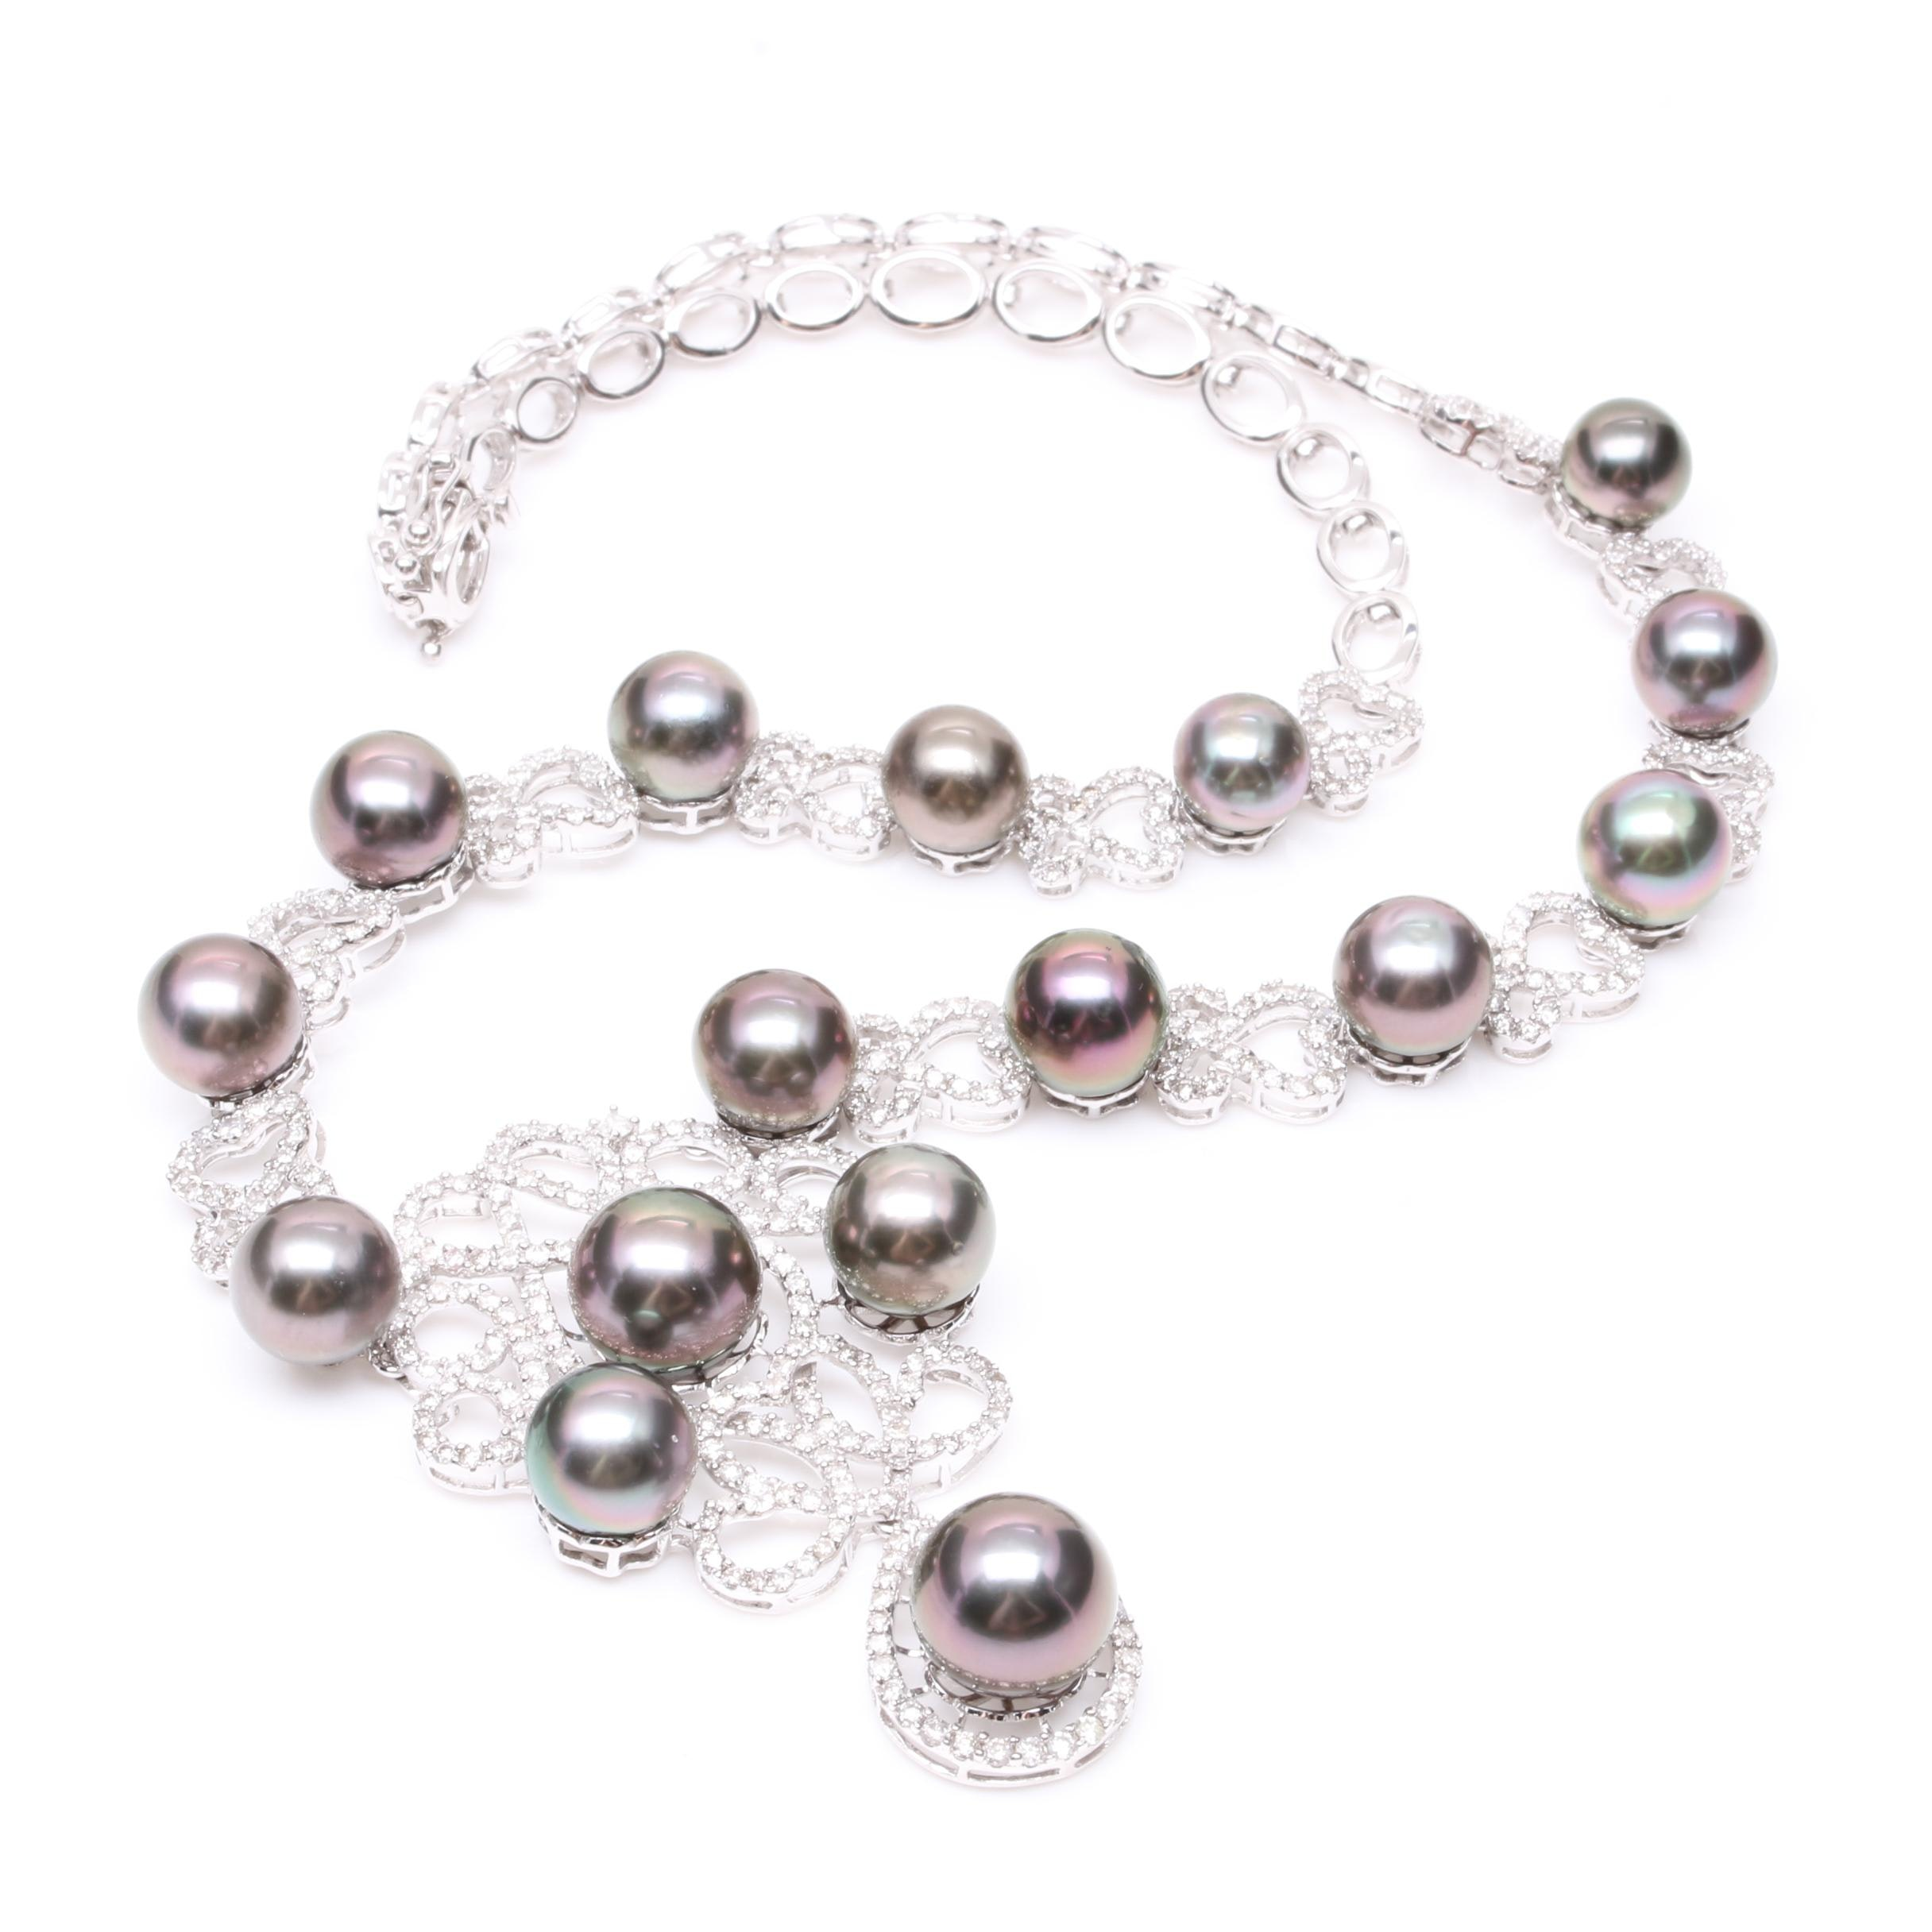 14K White Gold Cultured Pearl and 5.82 CTW Diamond Necklace